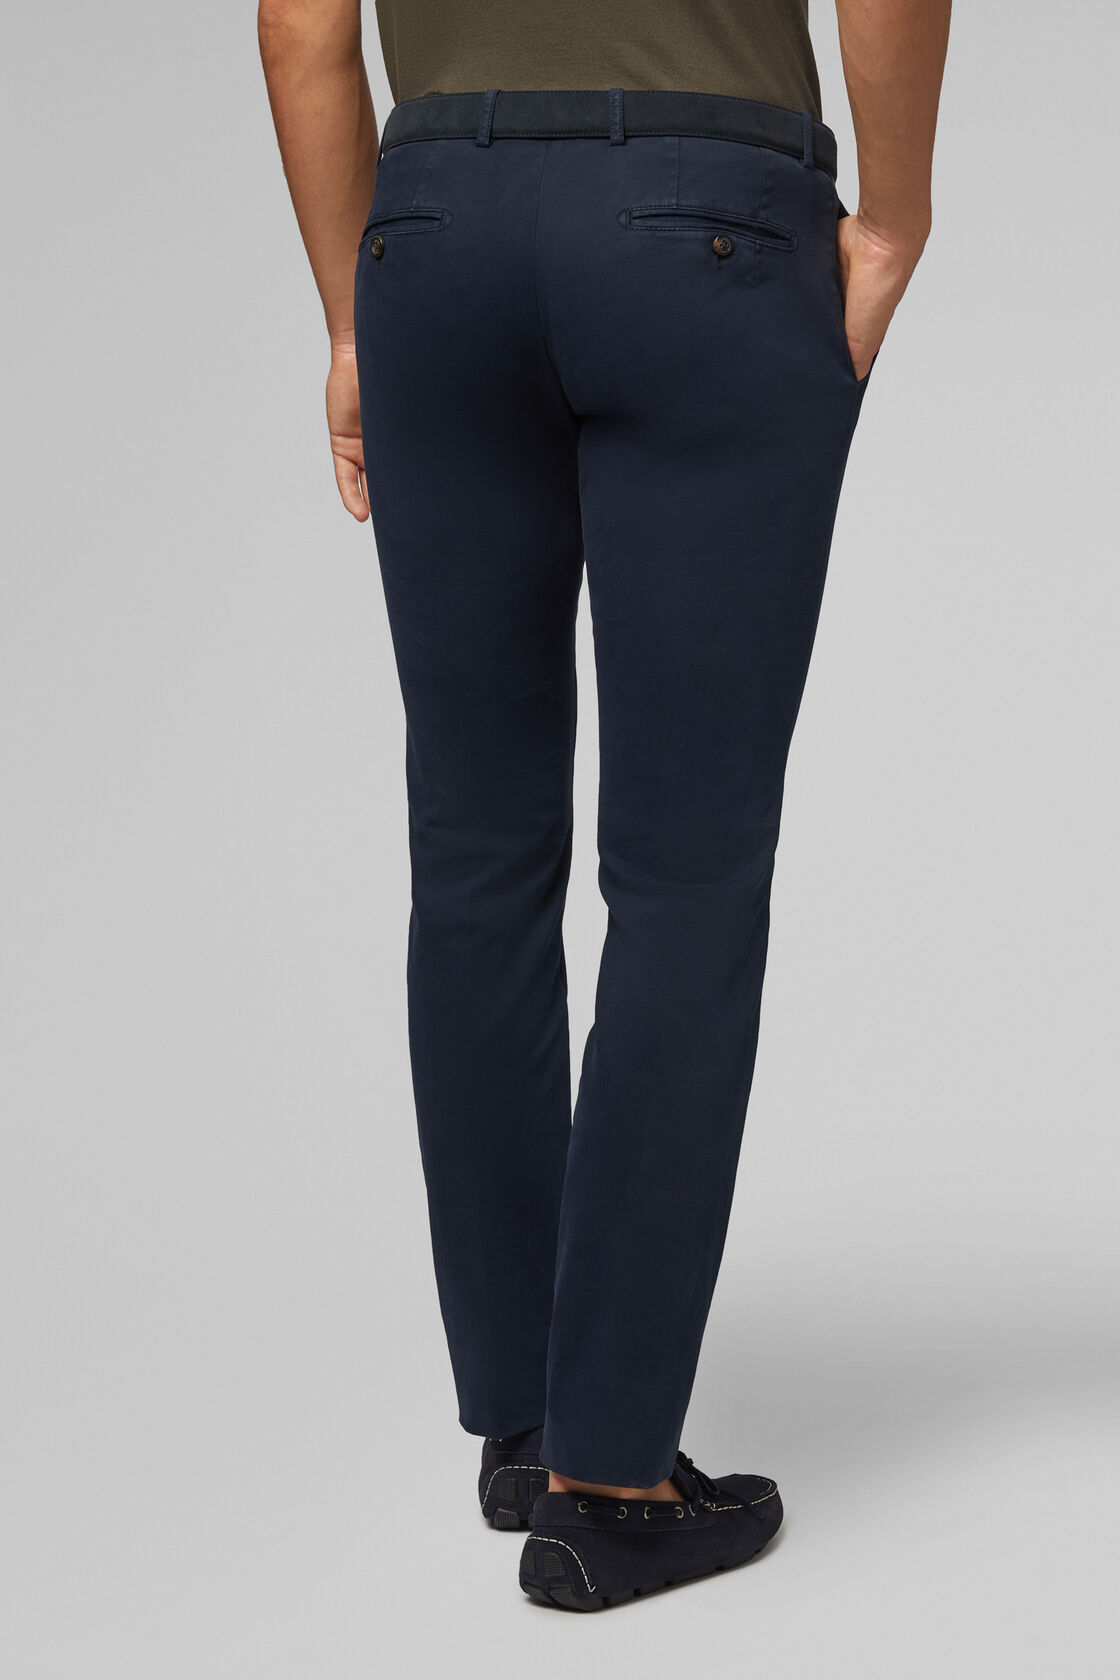 PANTALONE IN COTONE TRICOTINA STRETCH SLIM FIT, NAVY, hi-res